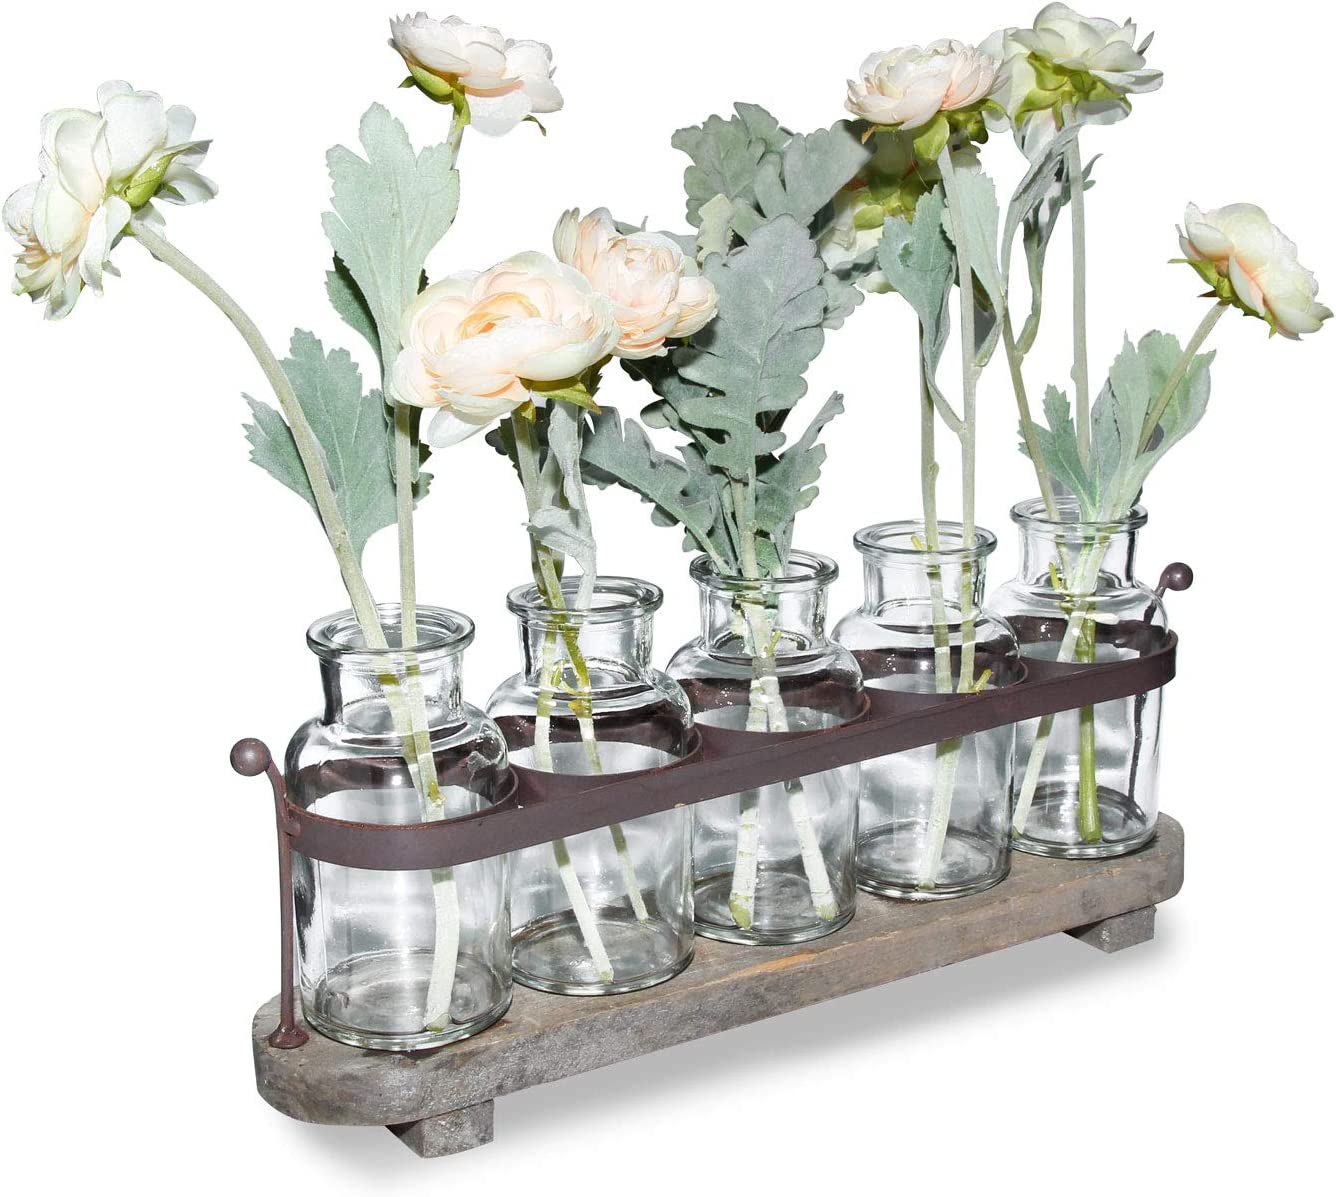 Funsoba Rustic 5 Glass Bottles Bud Vase Set with Wood Metal Tray for Decor Table Centerpieces (Type A)